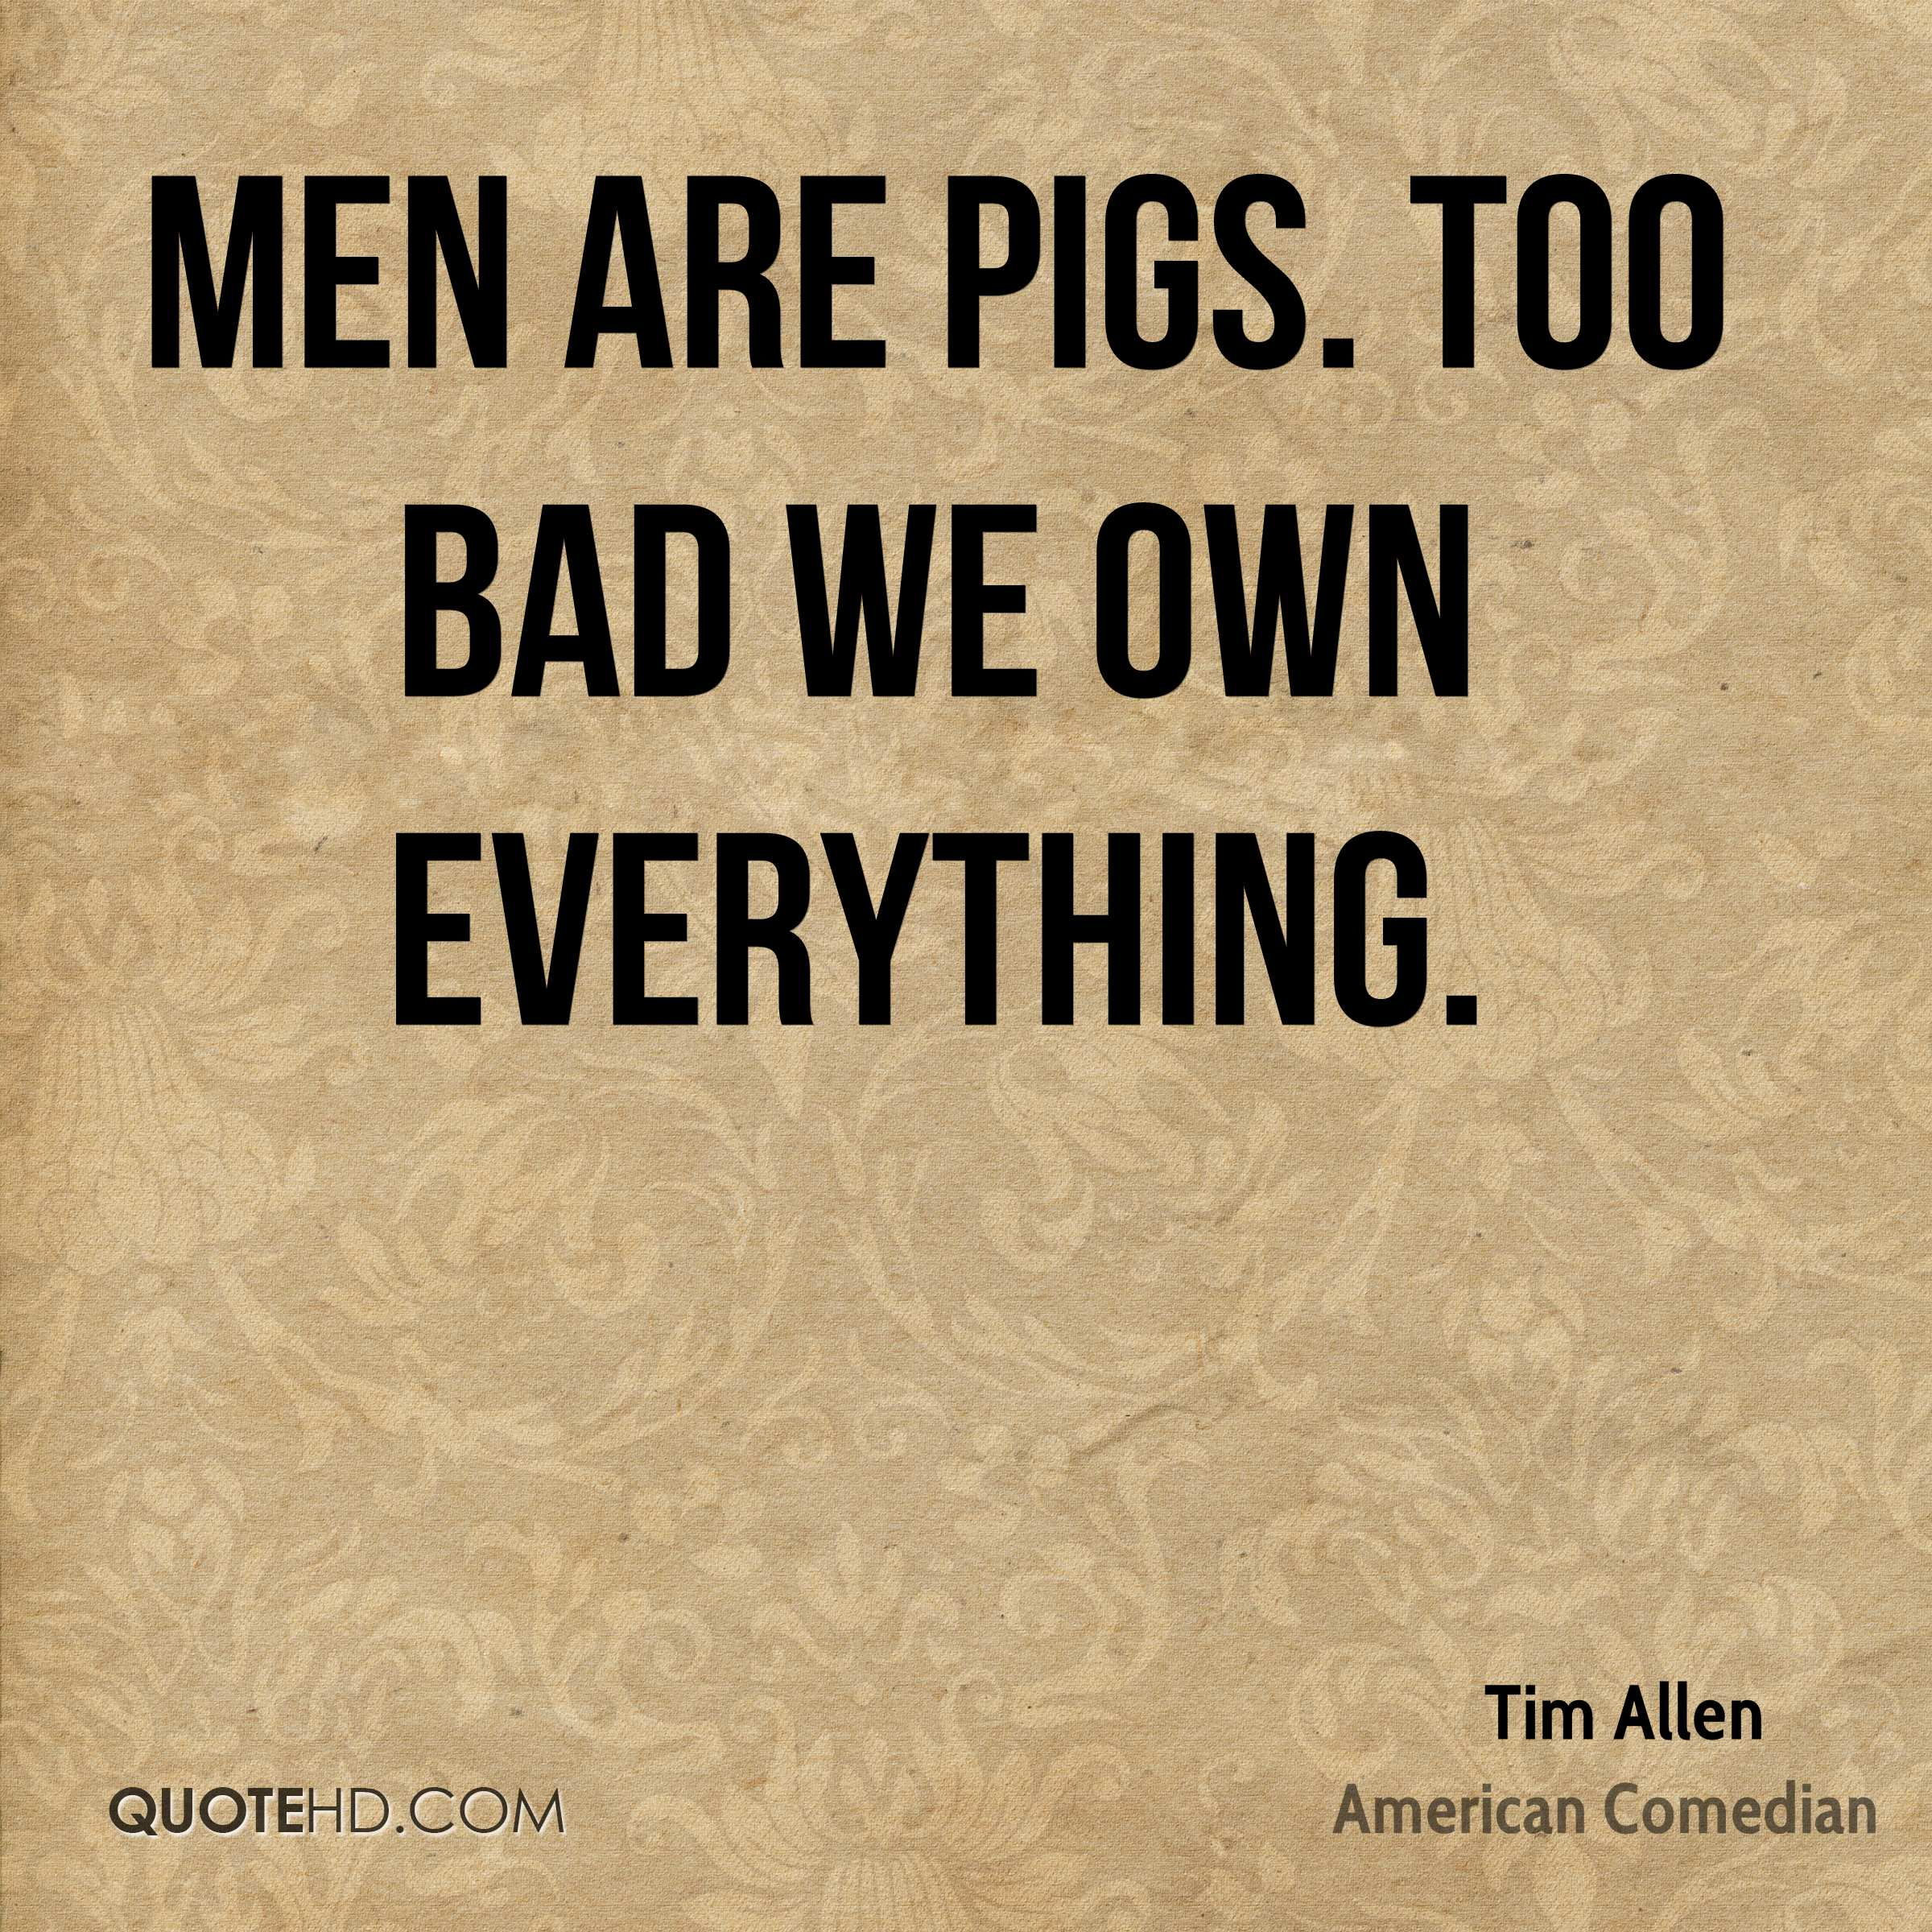 Men are pigs. Too bad we own everything.